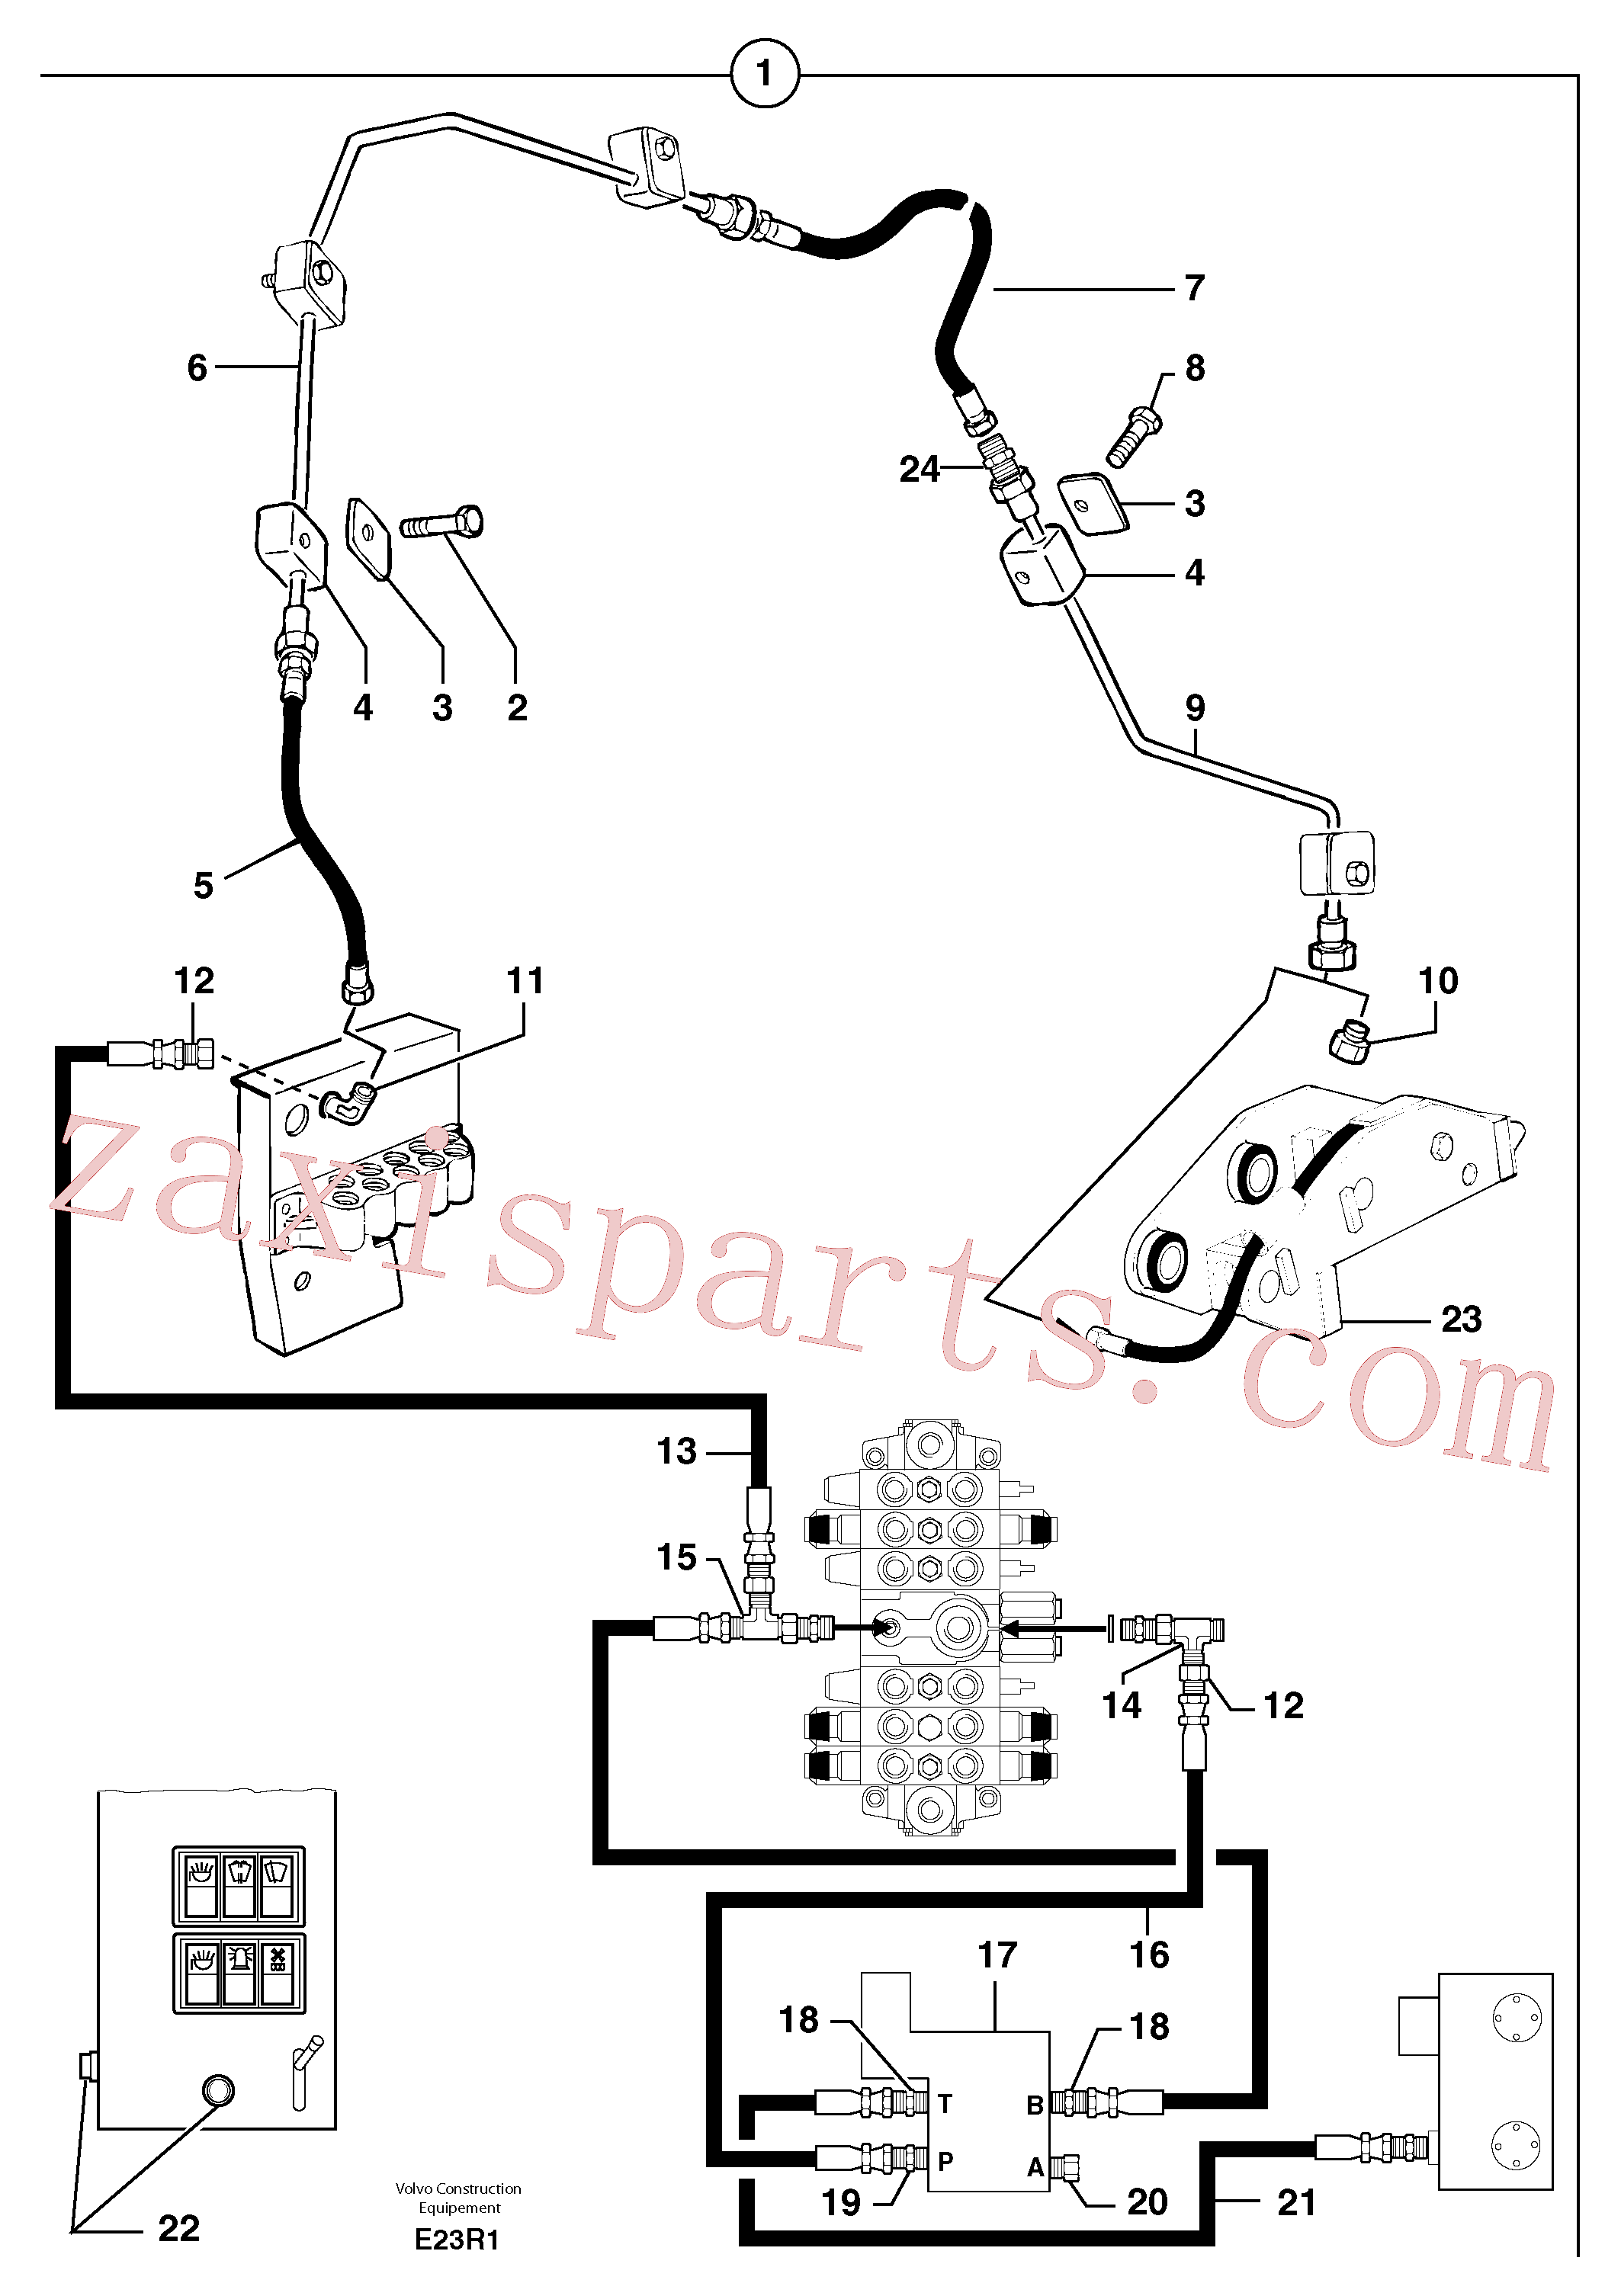 PJ4190203 for Volvo Hydraulic circuit ( snap-action attachment )(E23R1 assembly)